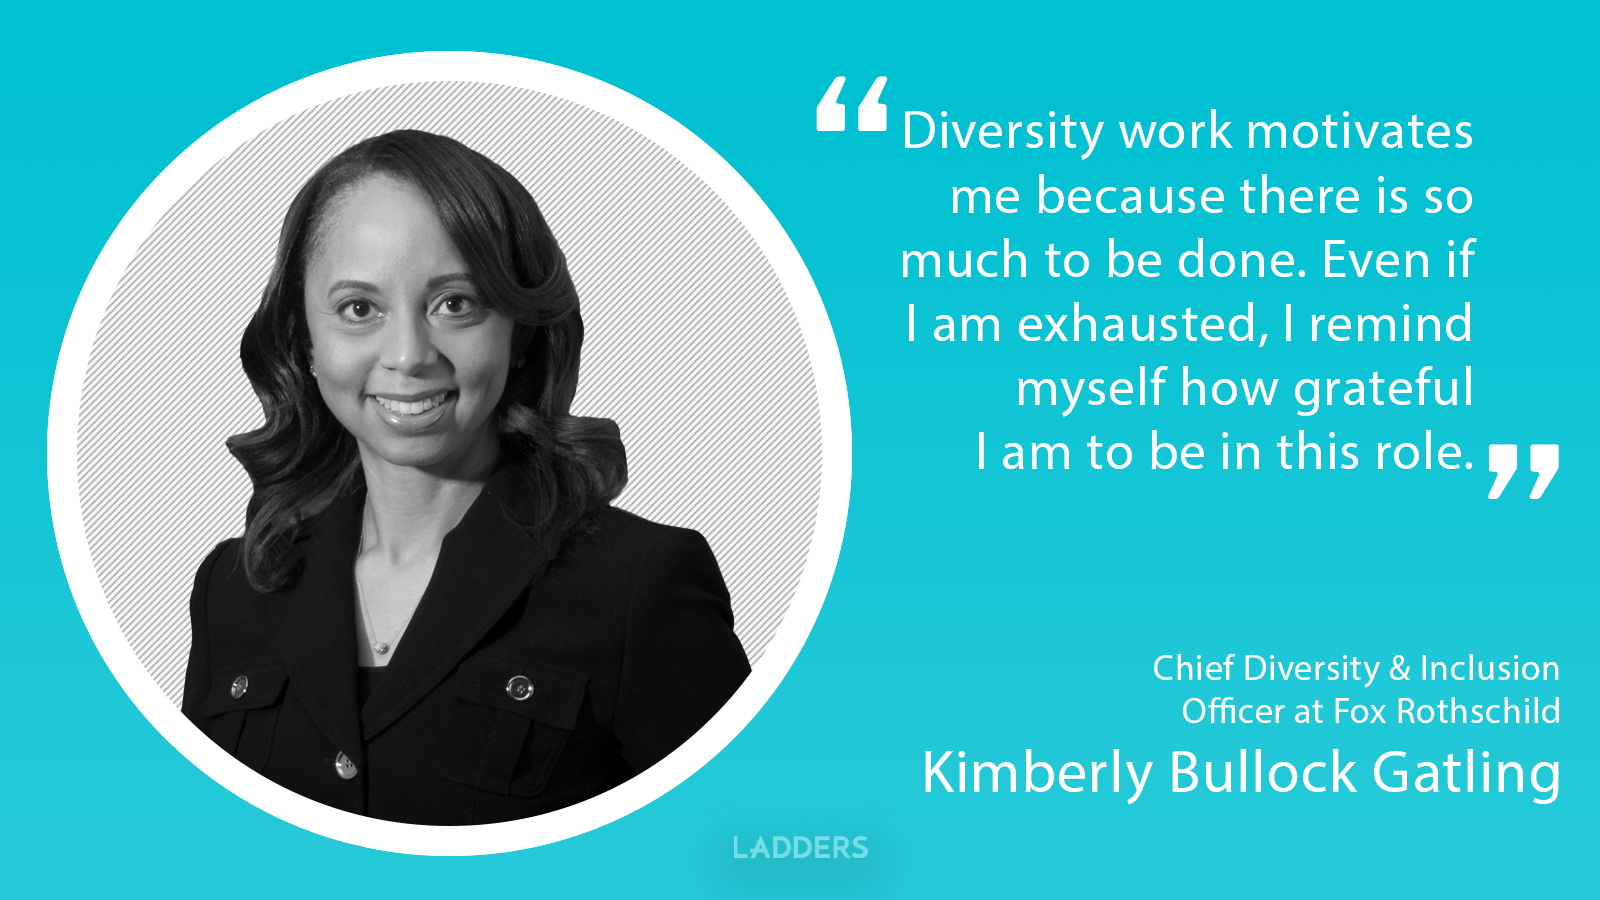 Kimberly Bullock Gatling, Chief Diversity & Inclusion Officer at Fox Rothschild's: Diversity work motivates me because there is so much to be done.